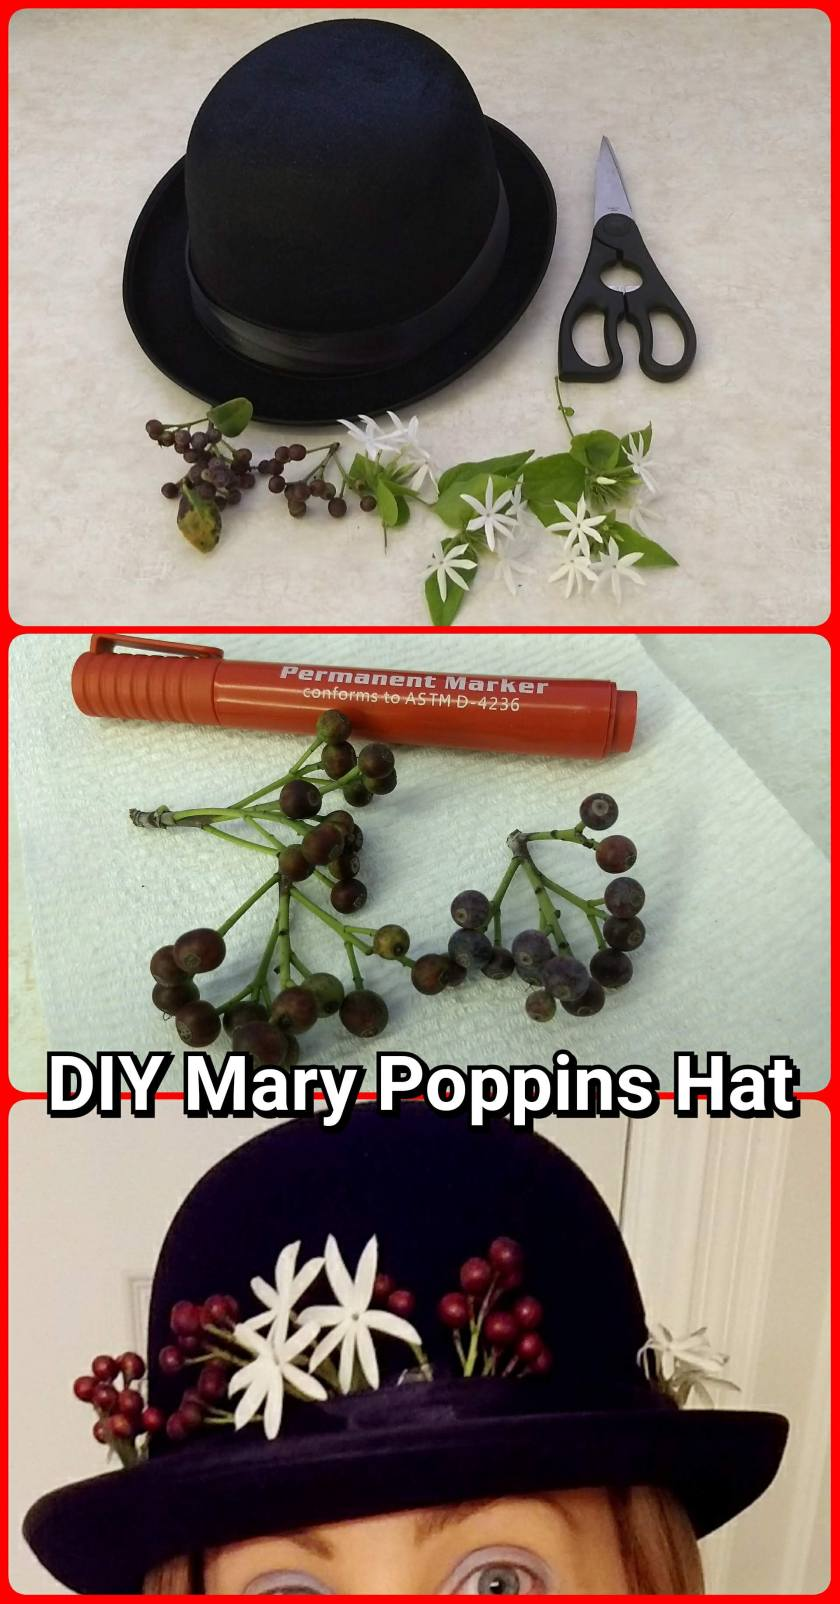 DIY Mary Poppins Hat for fancy dress costume tutorial by Helen's Journey Blog www.helensjourney.com